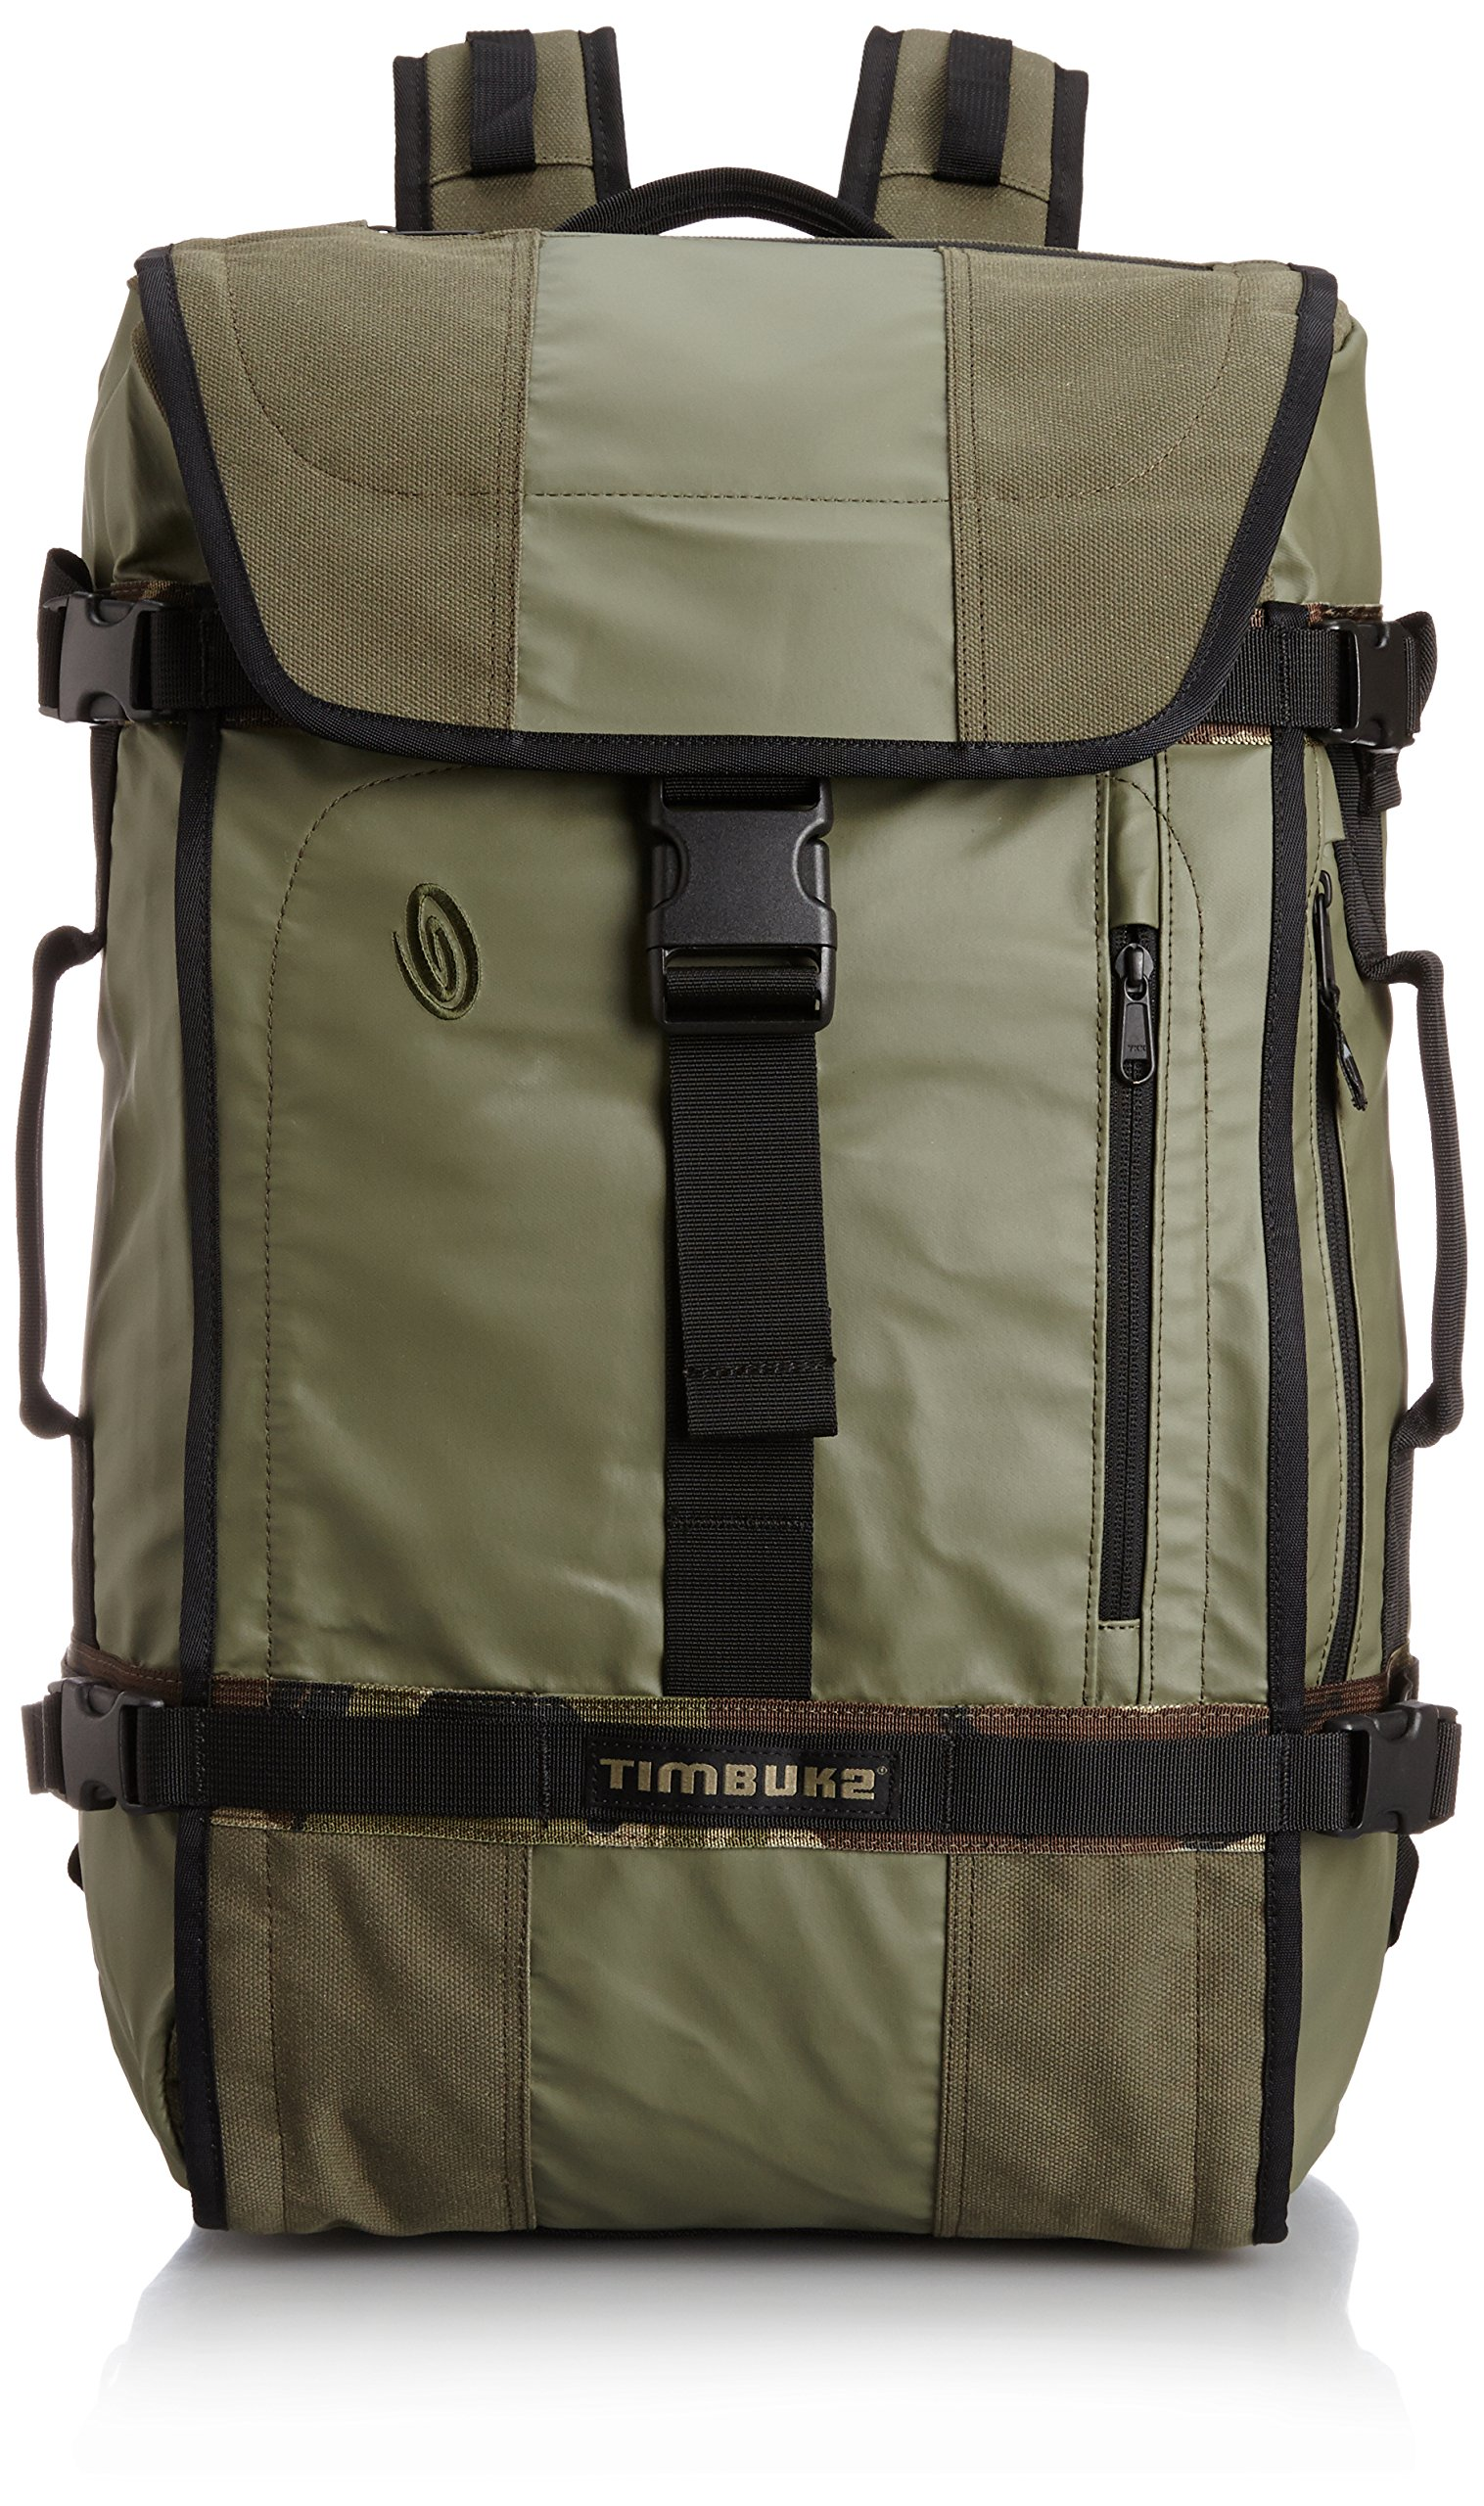 Timbuk2 Aviator Travel Pack 2014, Multi, Medium